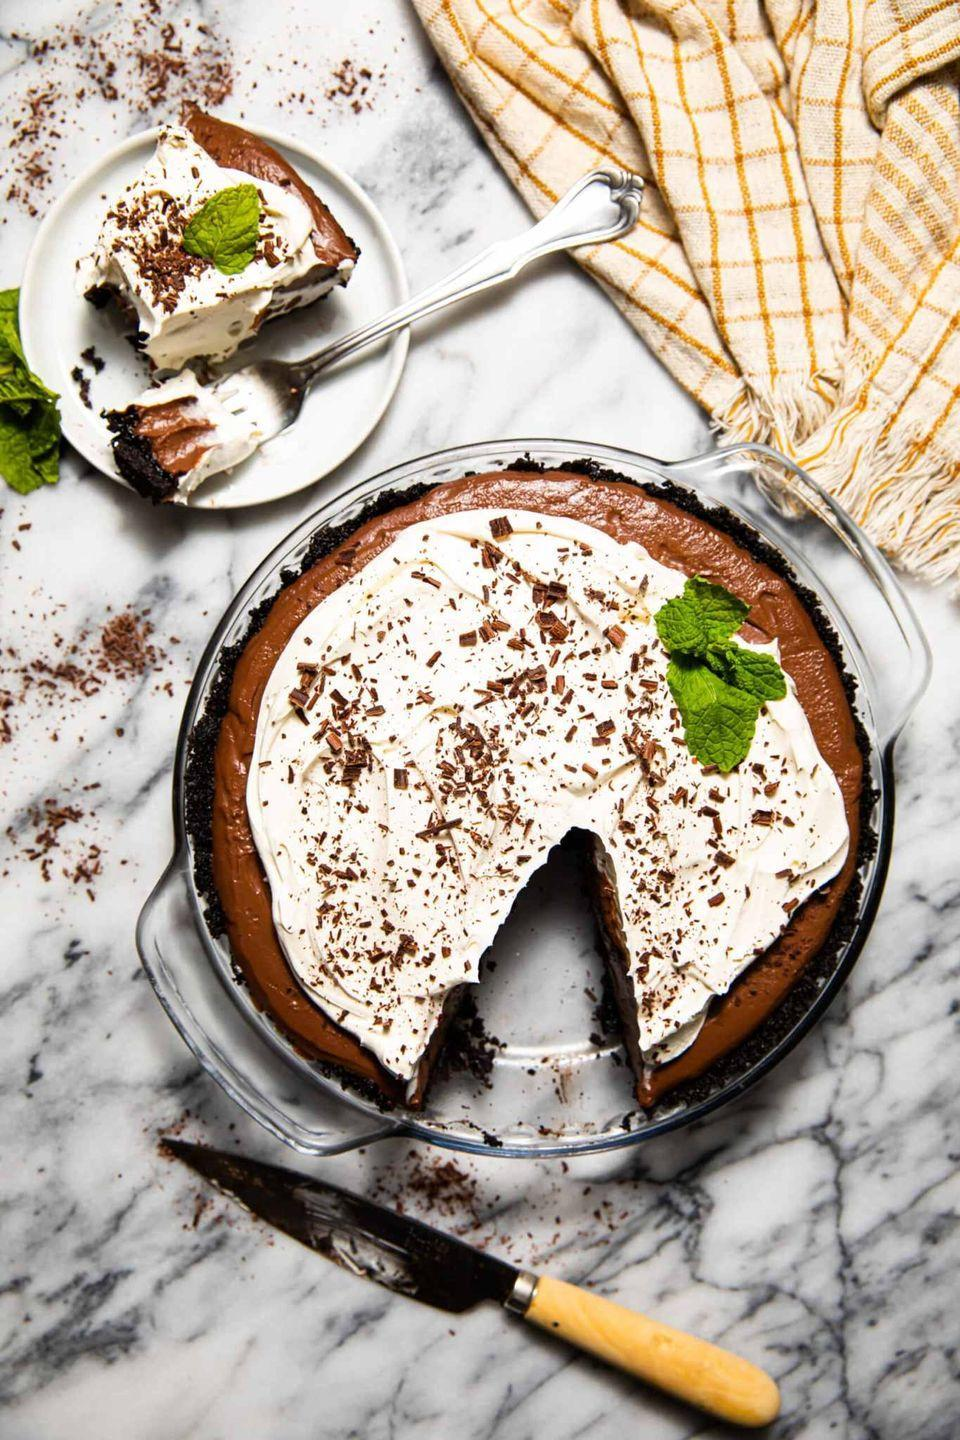 "<p>You'll be snacking on chocolate all day long, so what's a little more at dessert? This creamy pie can be stored for up to three days in the fridge, meaning the fun can last practically all week.</p><p><a href=""https://www.butterbeready.com/mocha-chocolate-cream-pie/"" rel=""nofollow noopener"" target=""_blank"" data-ylk=""slk:Get the recipe at Butter Be Ready »"" class=""link rapid-noclick-resp""><em>Get the recipe at Butter Be Ready </em><strong>»</strong></a></p>"